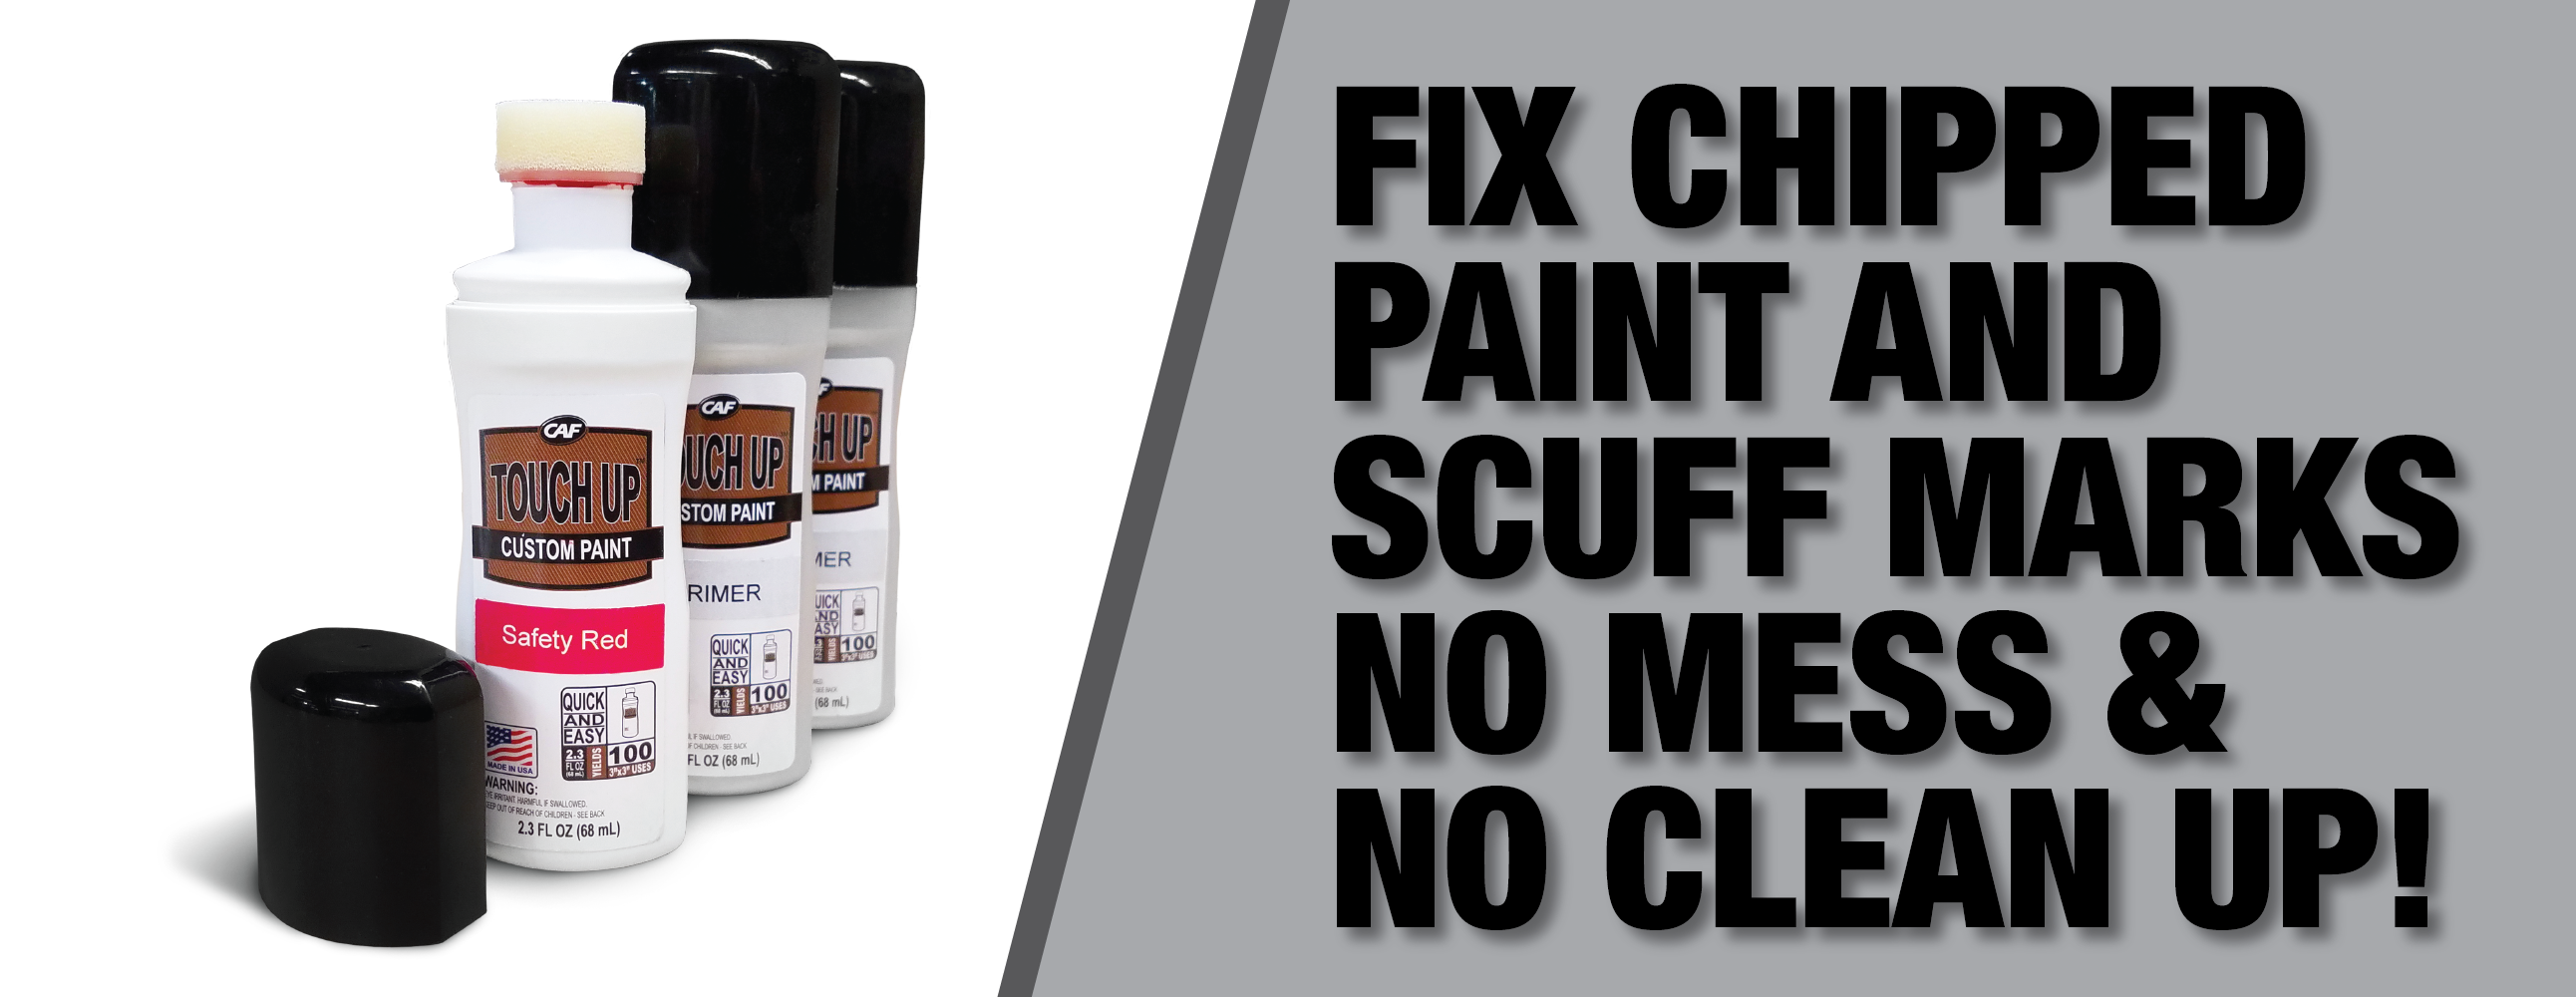 How to Easily Fix Chipped Paint or Markings